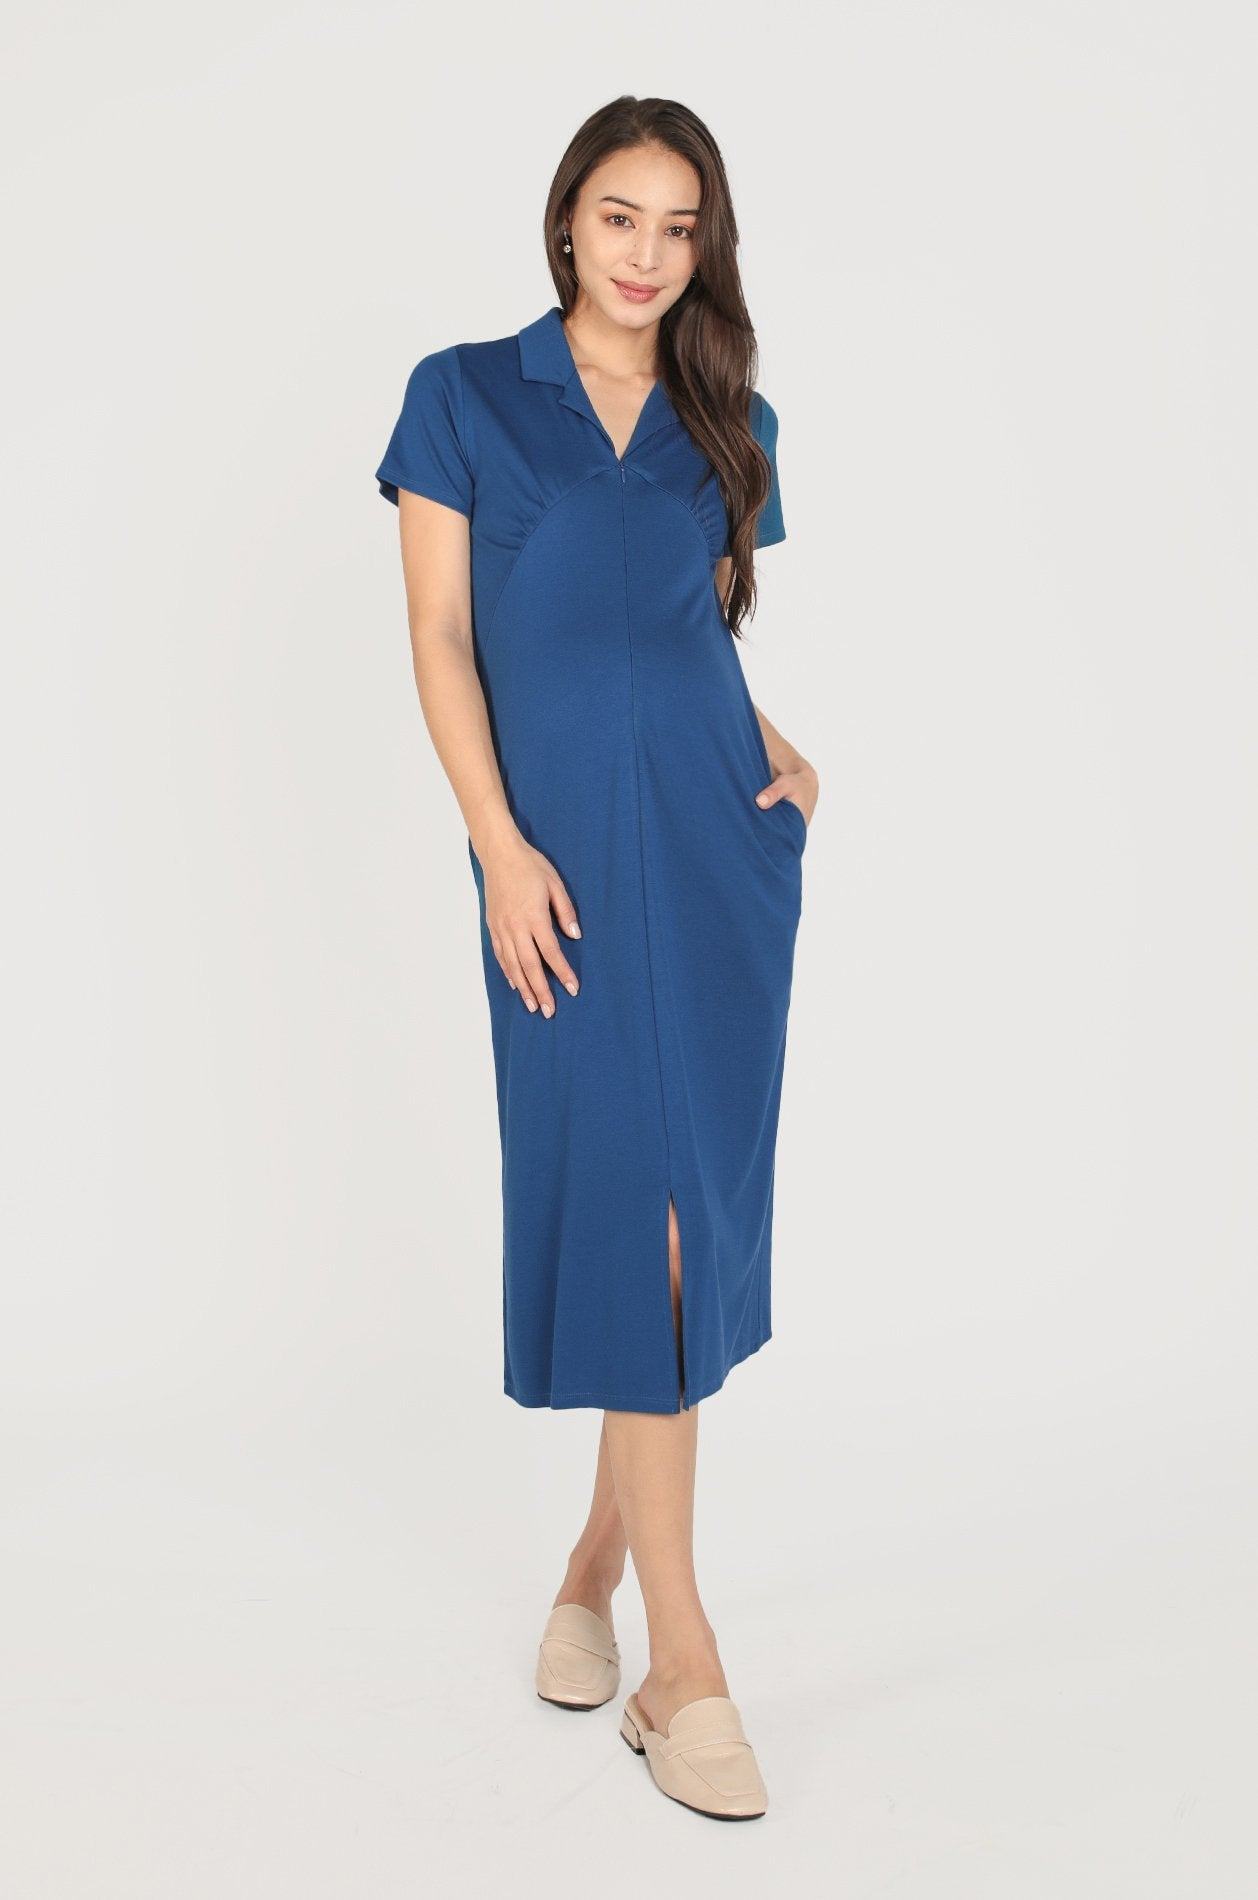 Delilah Maxi Nursing Dress In Teal Nursing Wear Jump Eat Cry